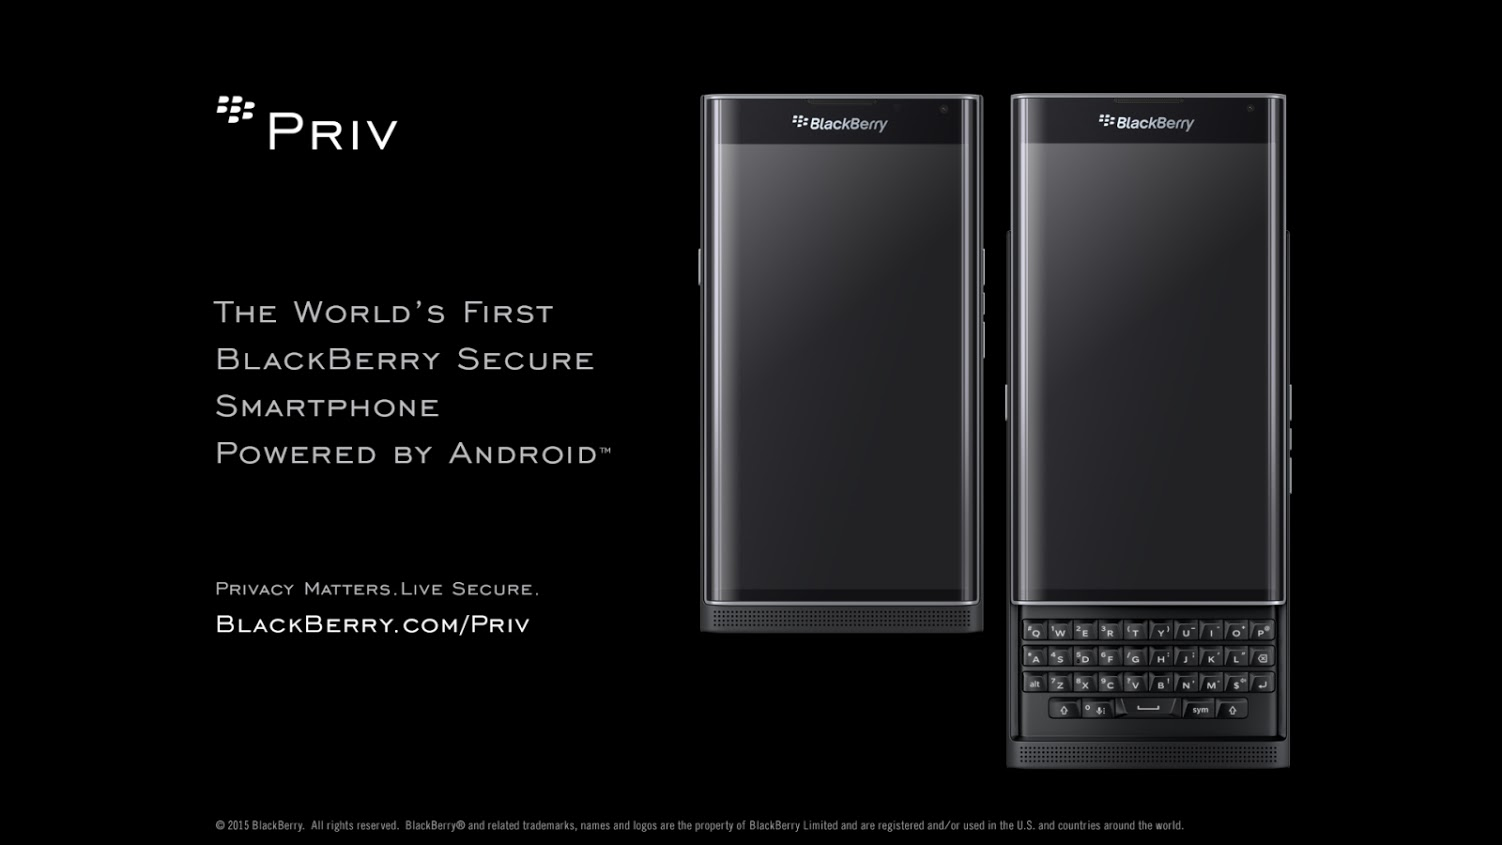 blackberry-priv-promo-slide